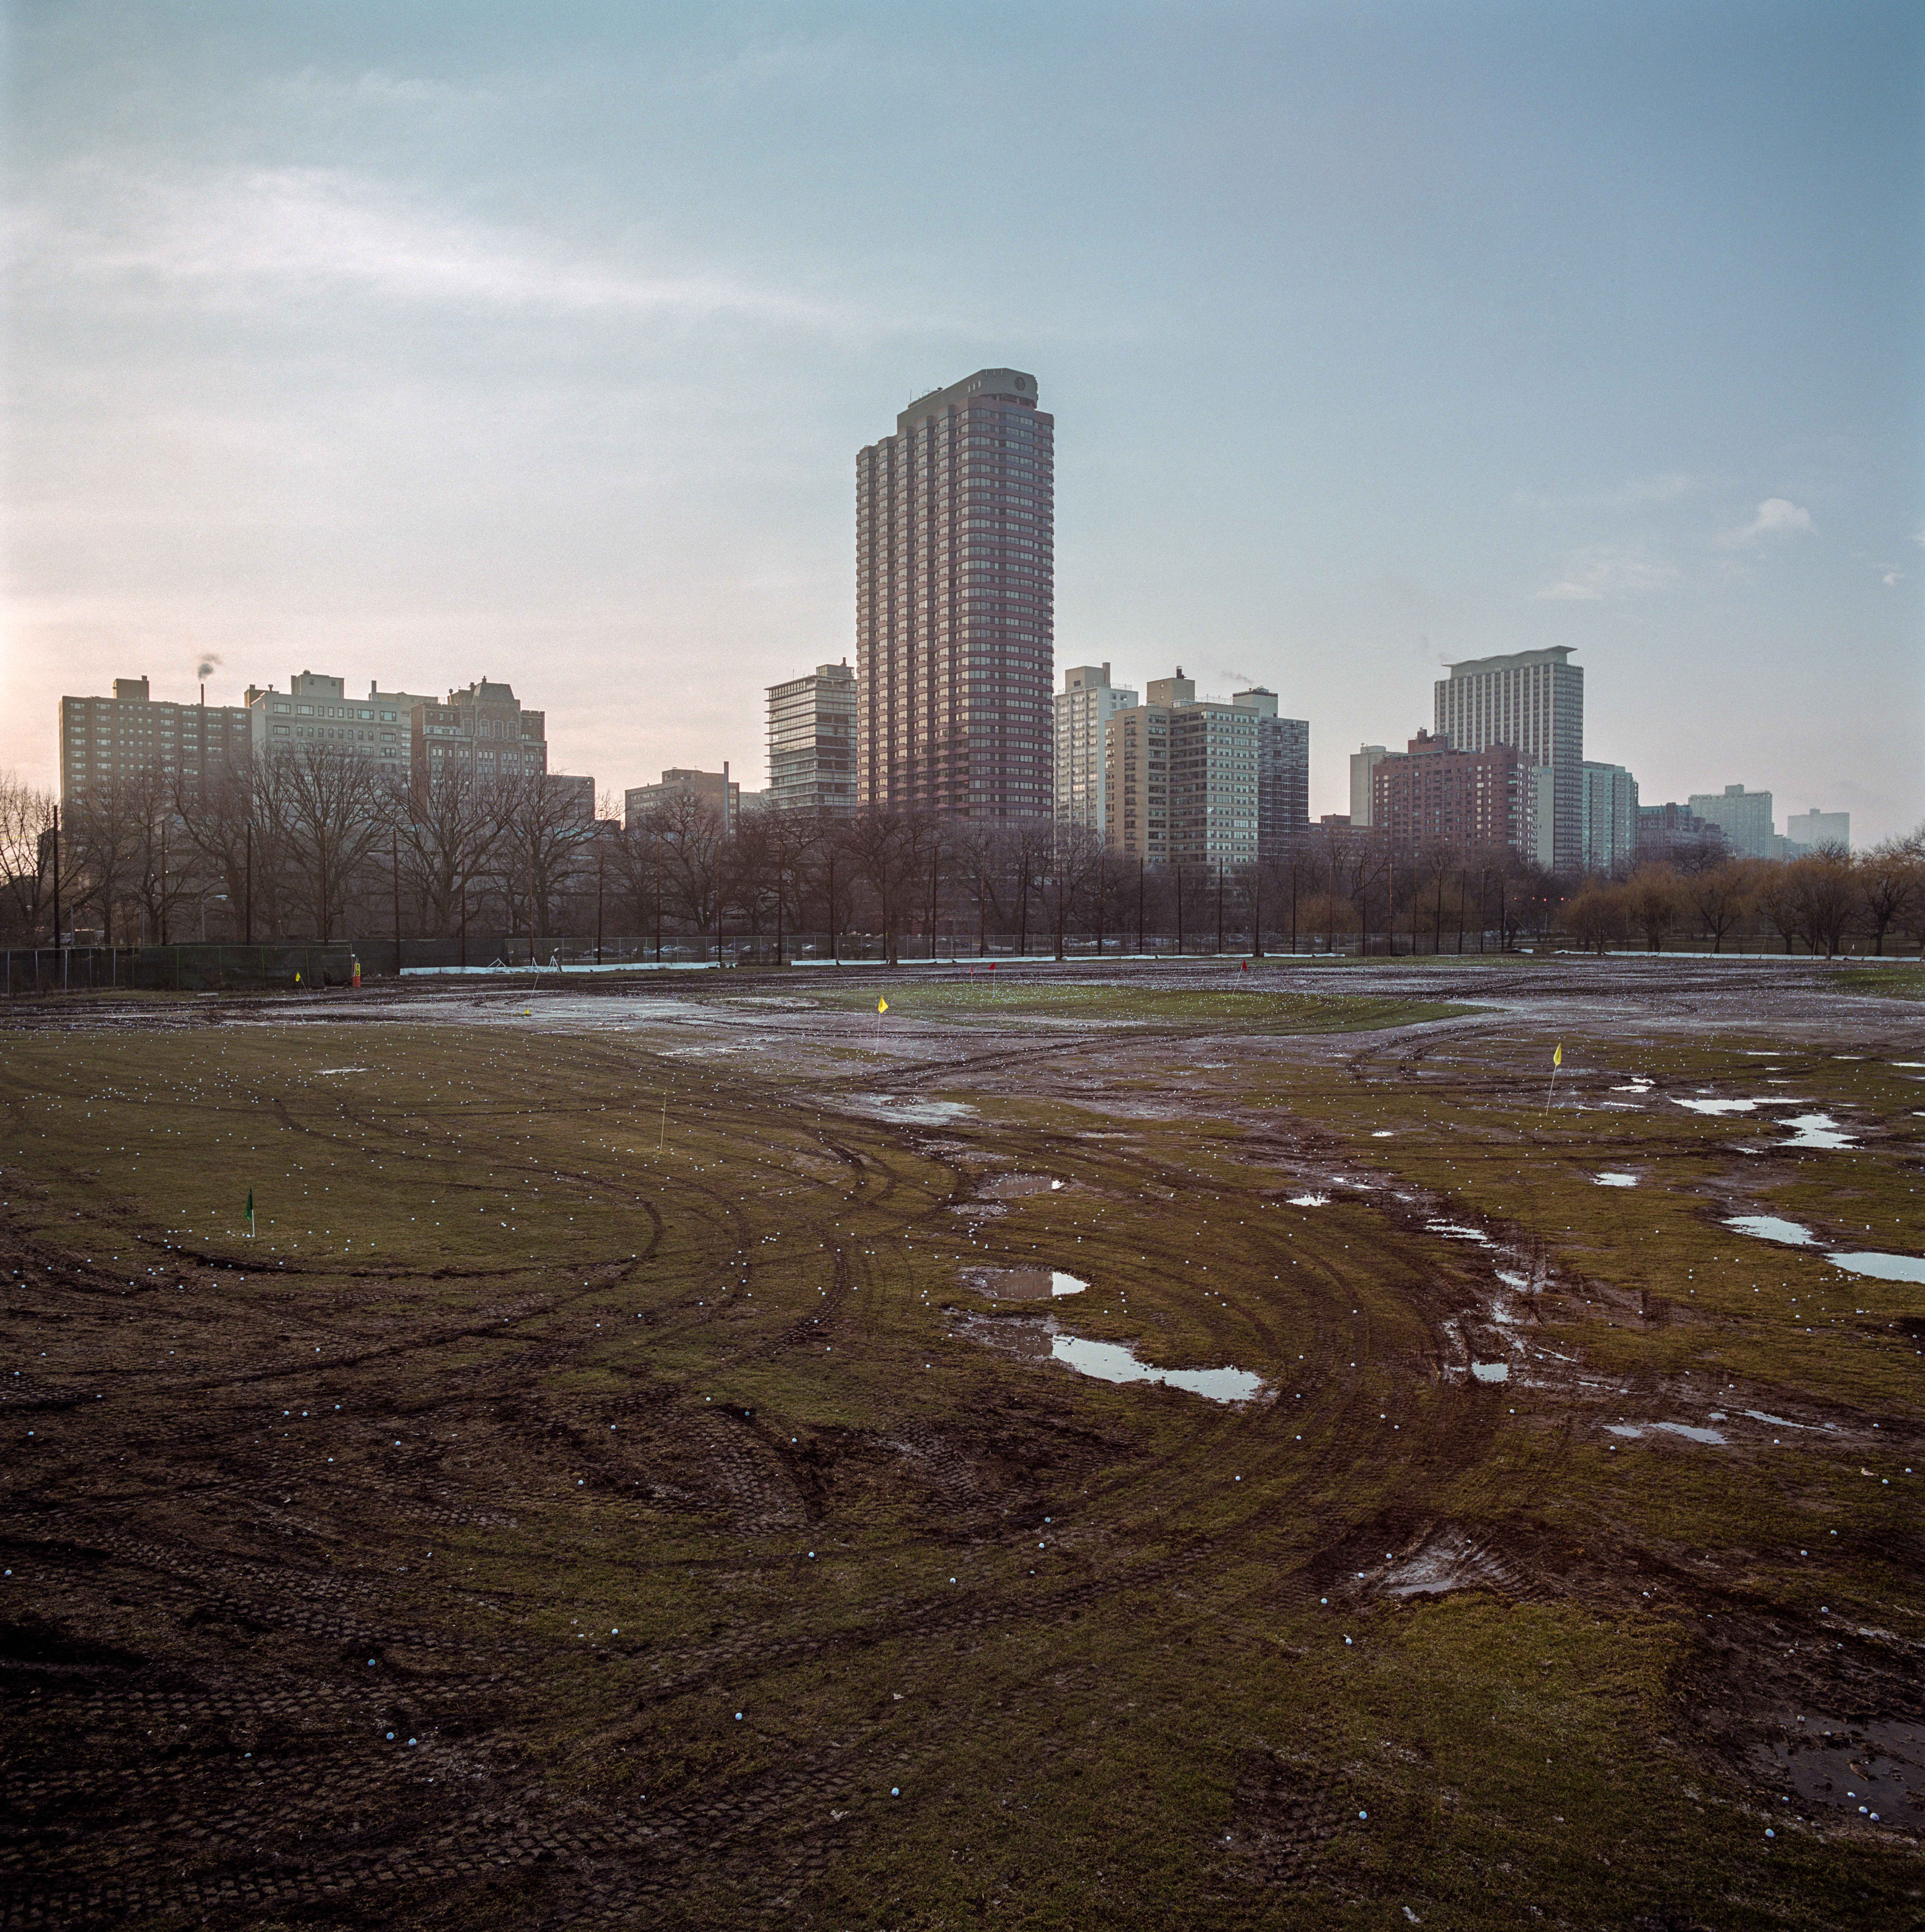 A golf course driving range that has seen better days in the middle of Chicago, Illinois